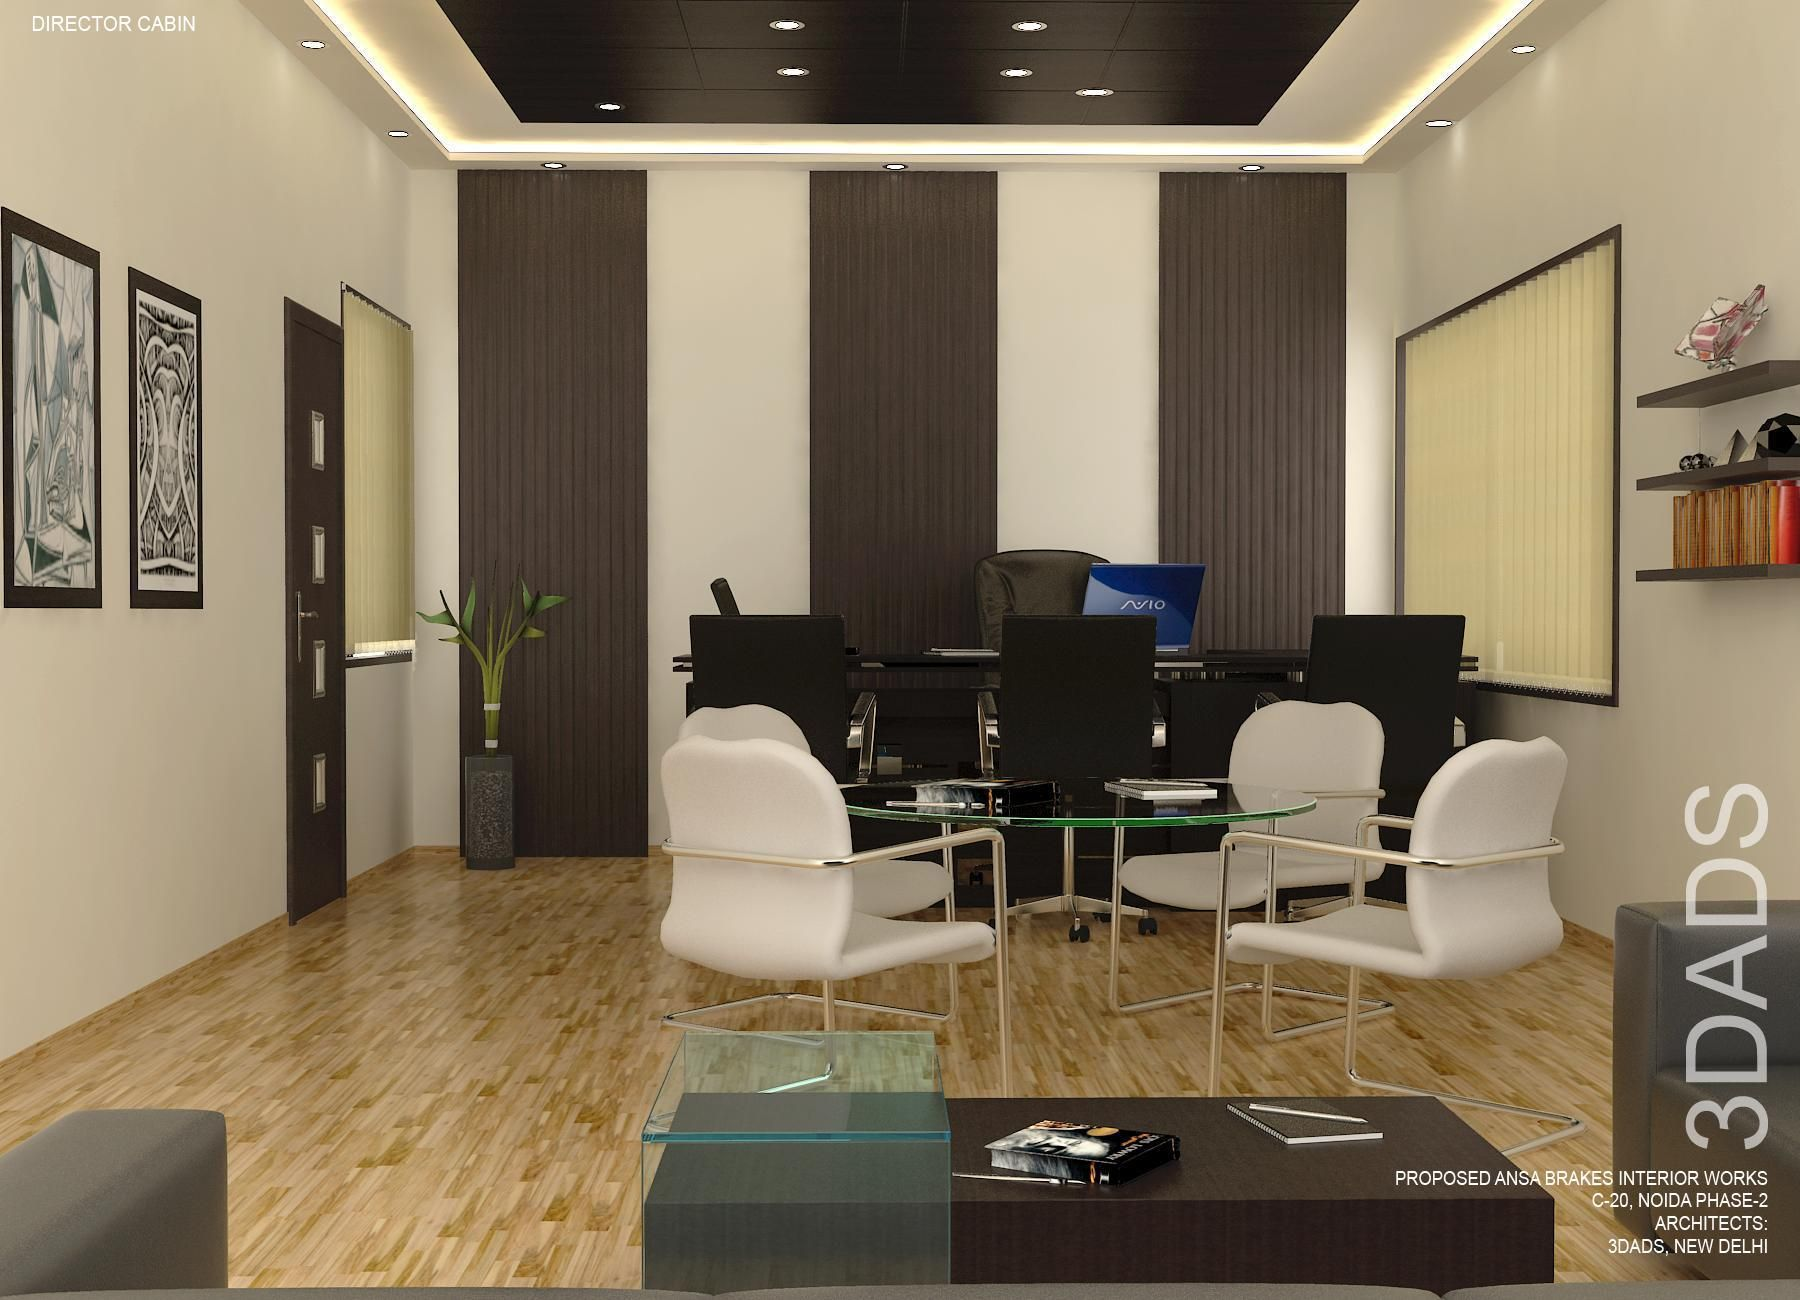 modern office cabin interior design3da: best office interior